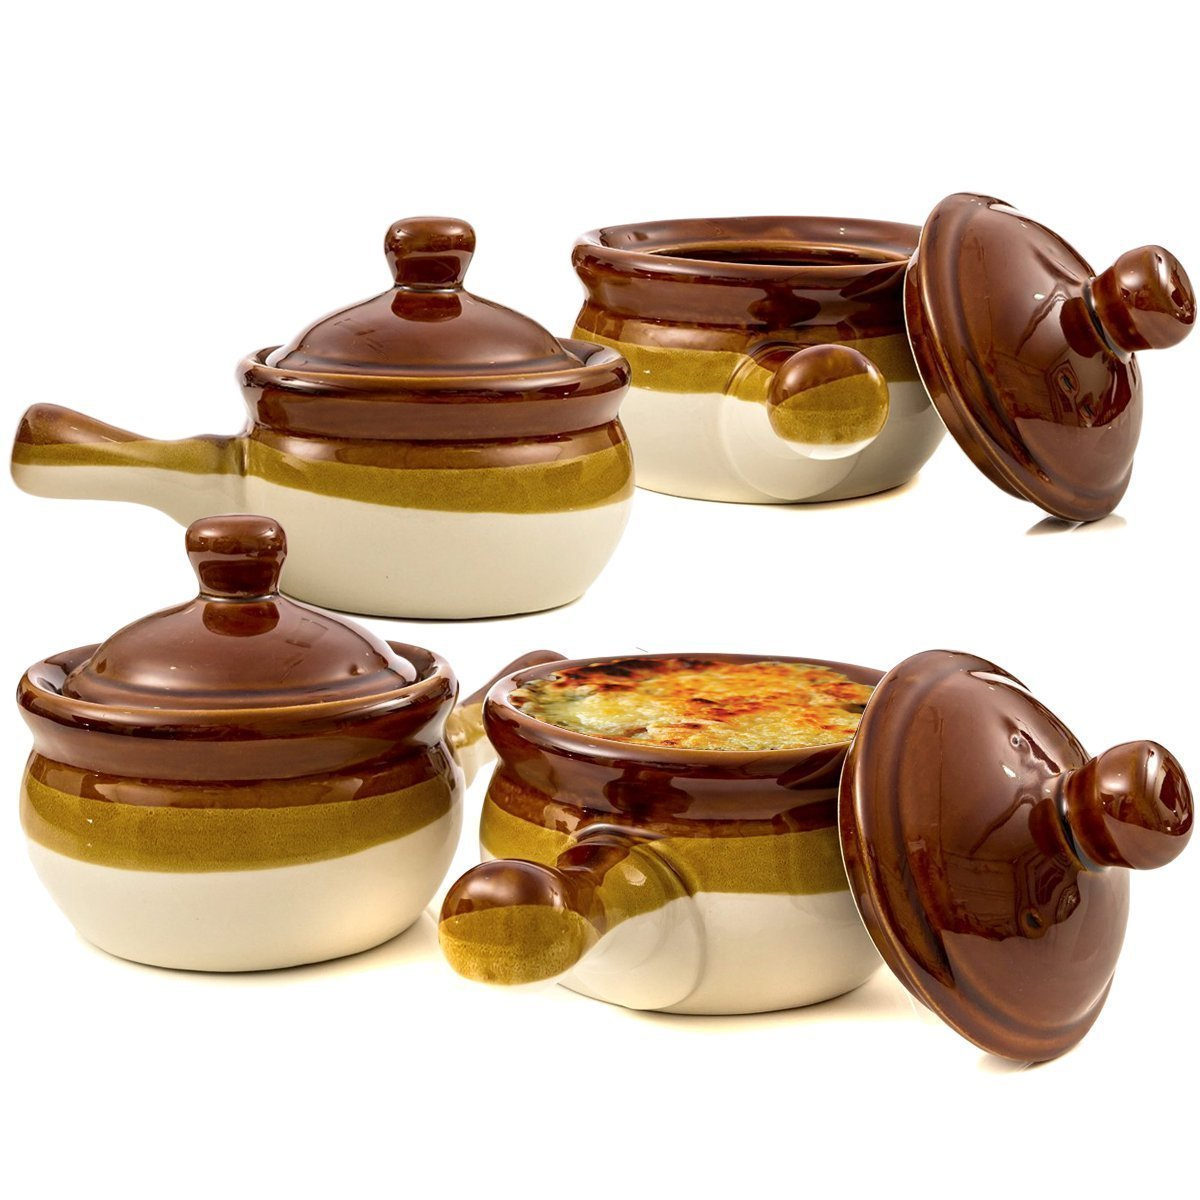 Gibson French Onion Soup Crock Bowls with Handles, 15 Ounce - Set of 4 SYNCHKG111299